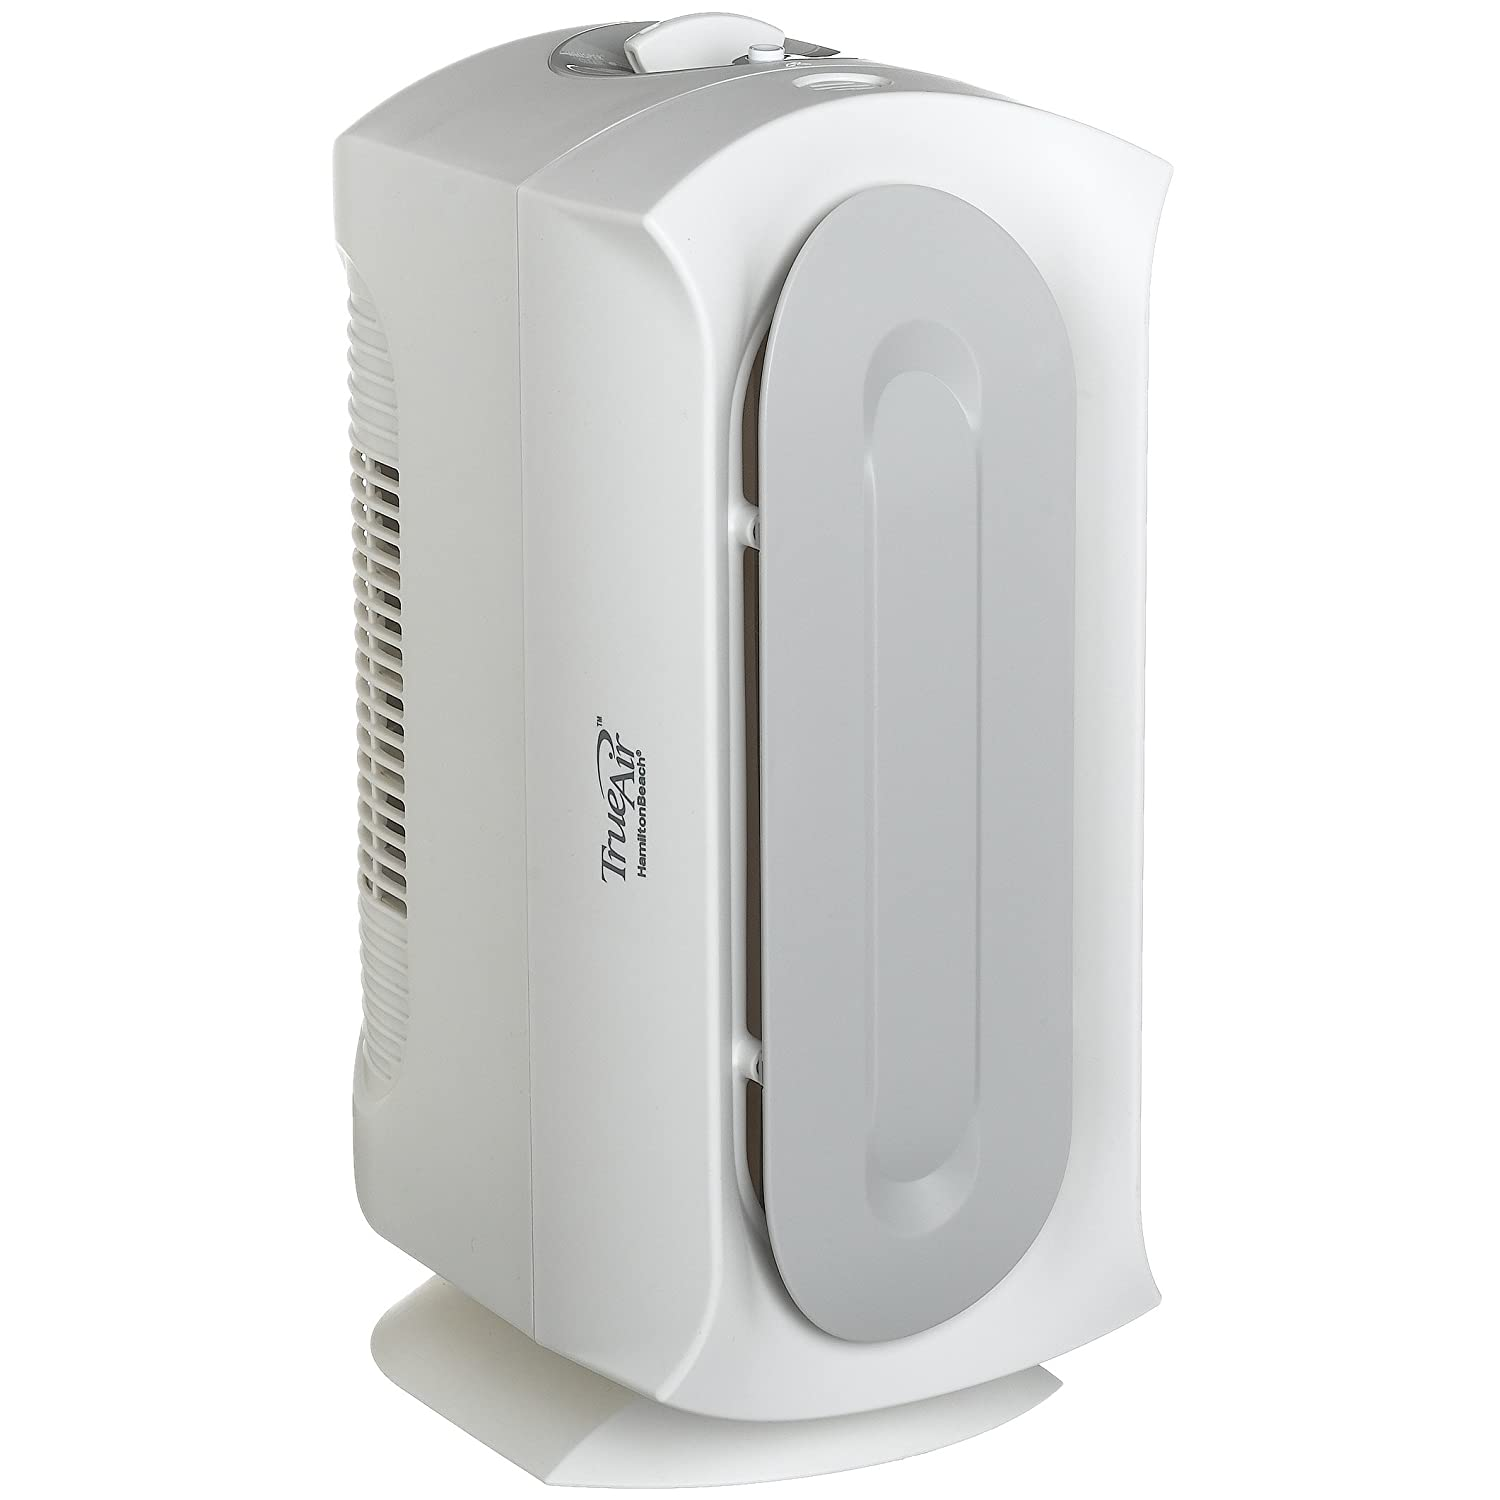 Best Bedroom Air Purifier 28 Images Best Bedroom Air Purifier Apartments Purifiers For Top